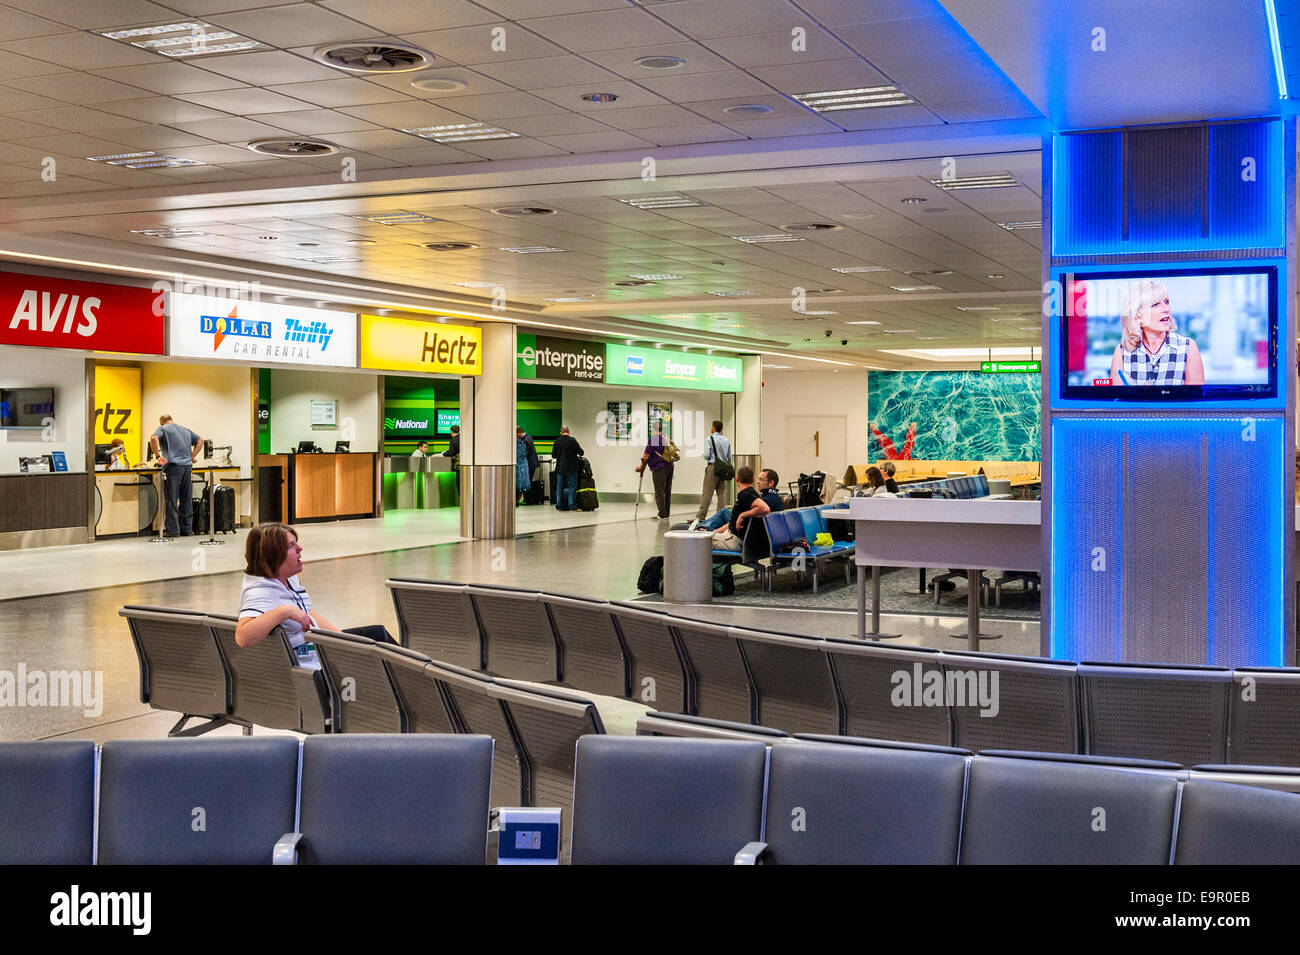 Gatwick airport, UK. A bored cleaner watching TV yawns on her early morning shift - Stock Image